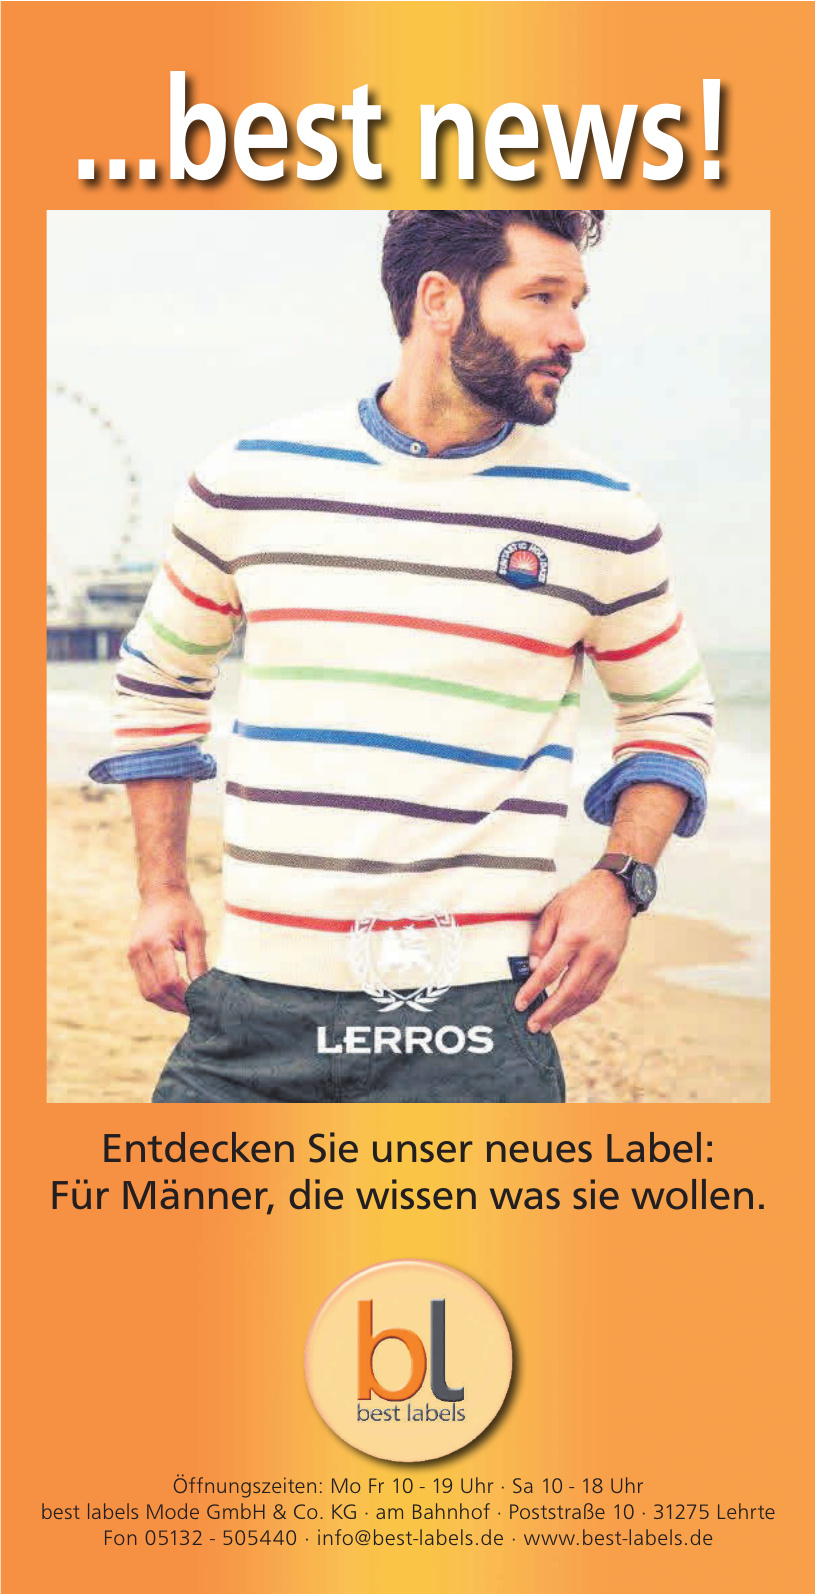 best labels Mode GmbH & Co. KG